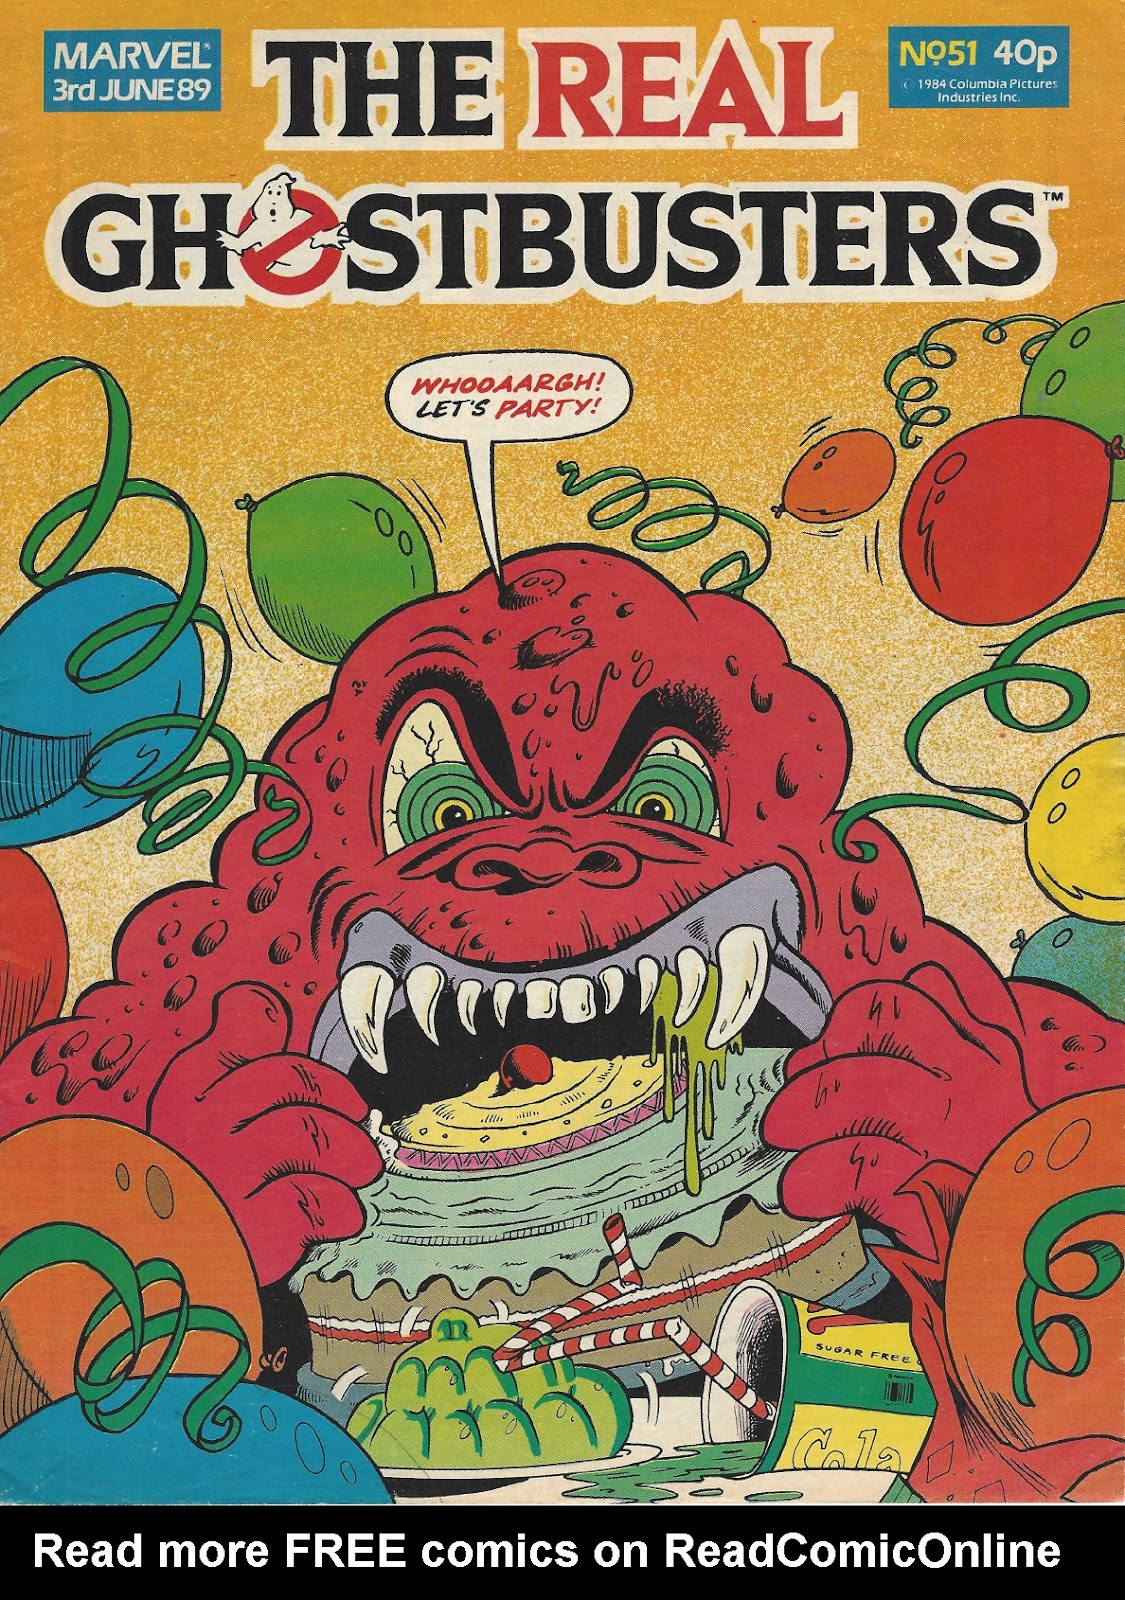 The Real Ghostbusters 51 Page 1